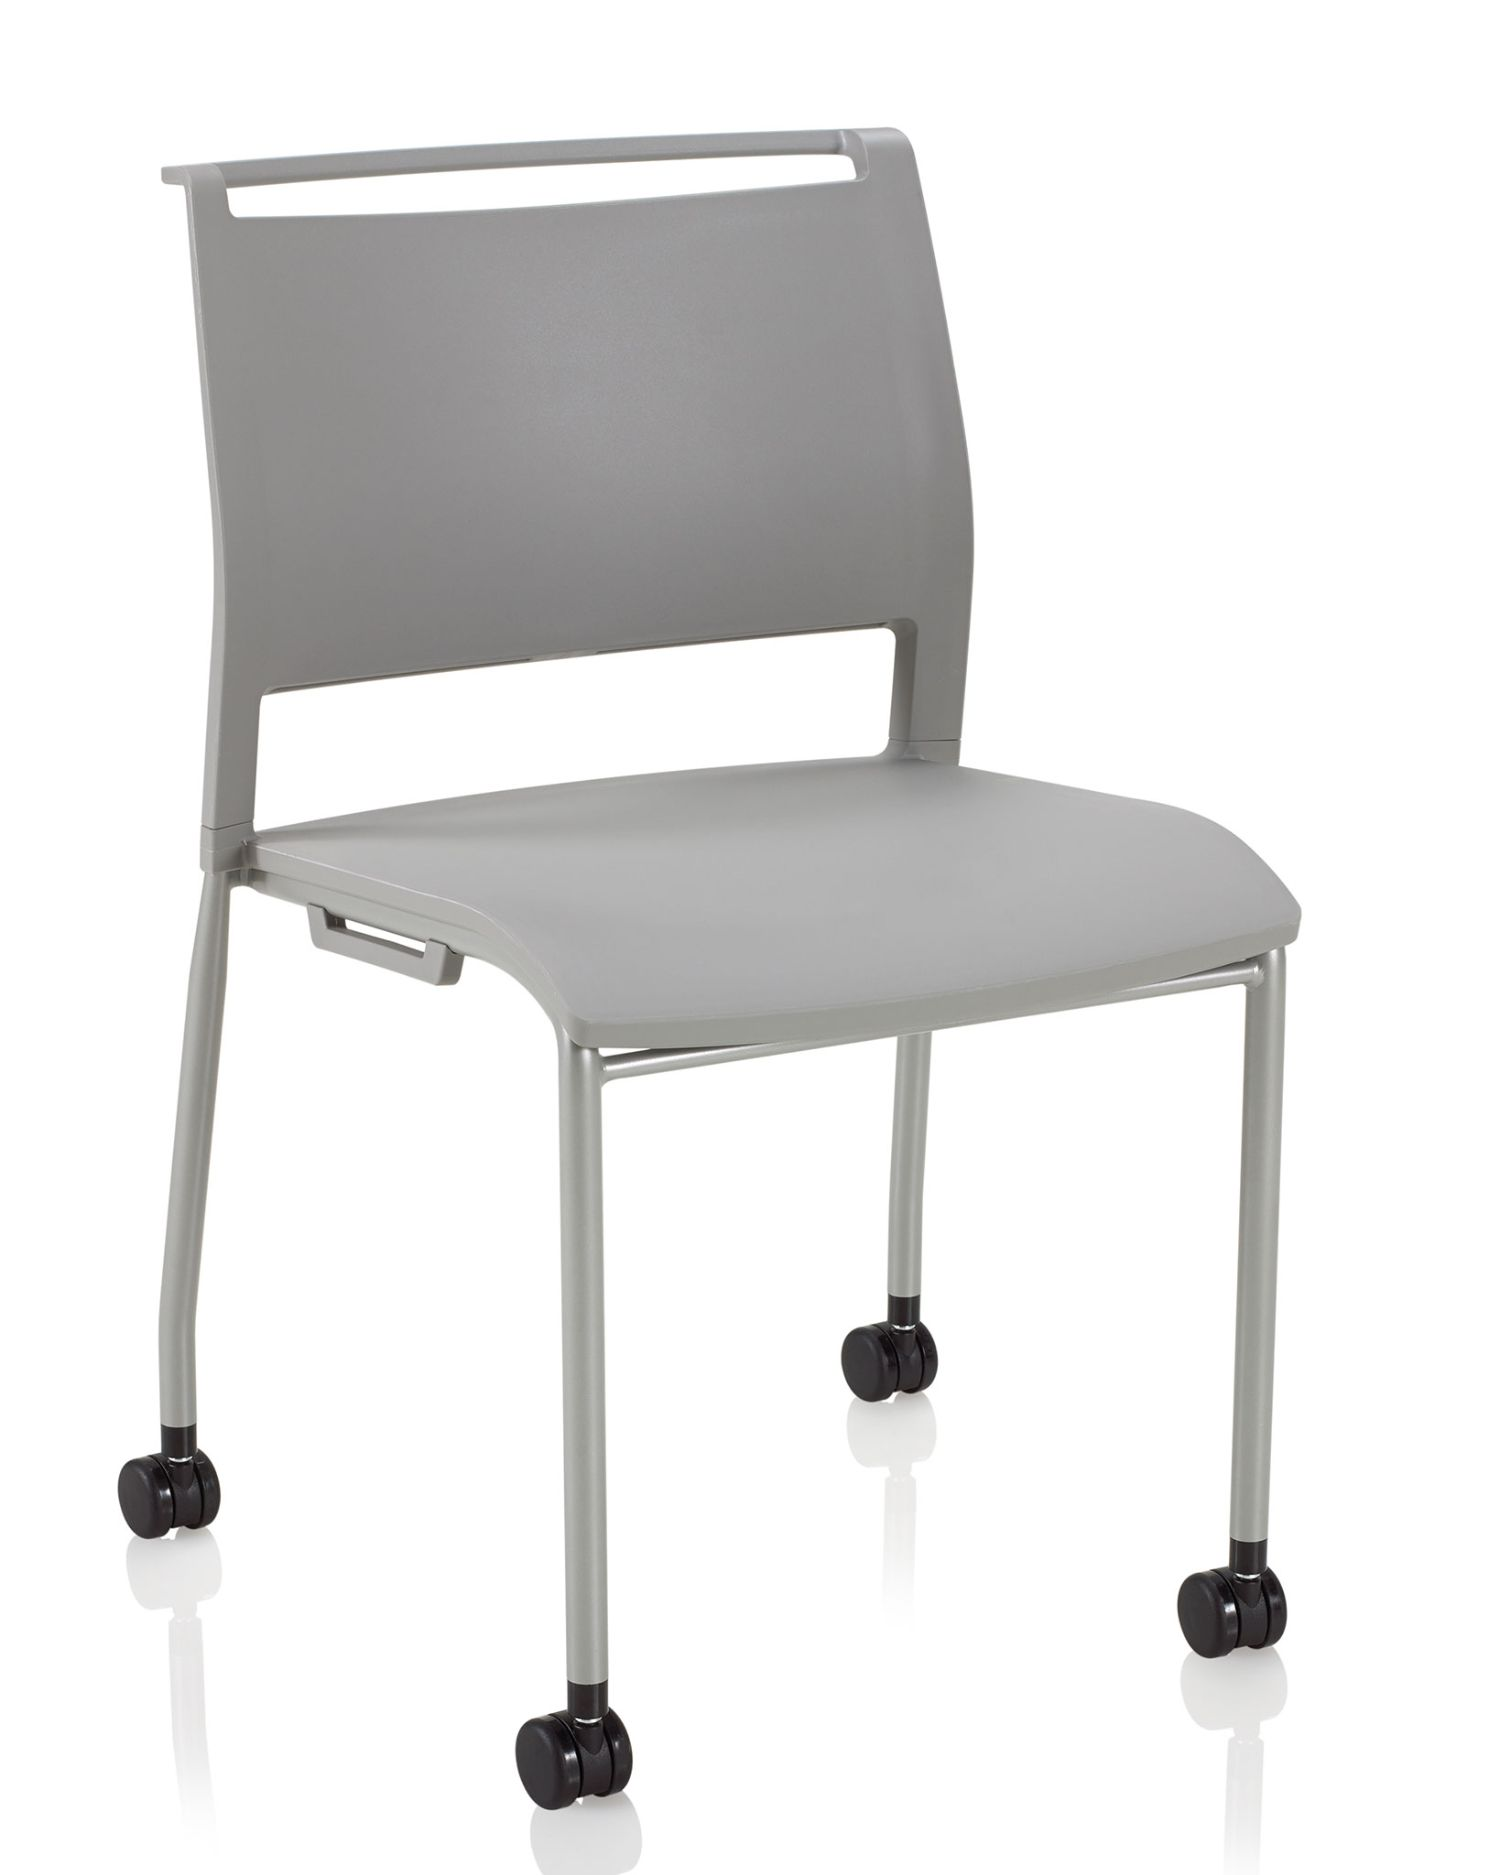 stone grey opt4 mobile stack chair